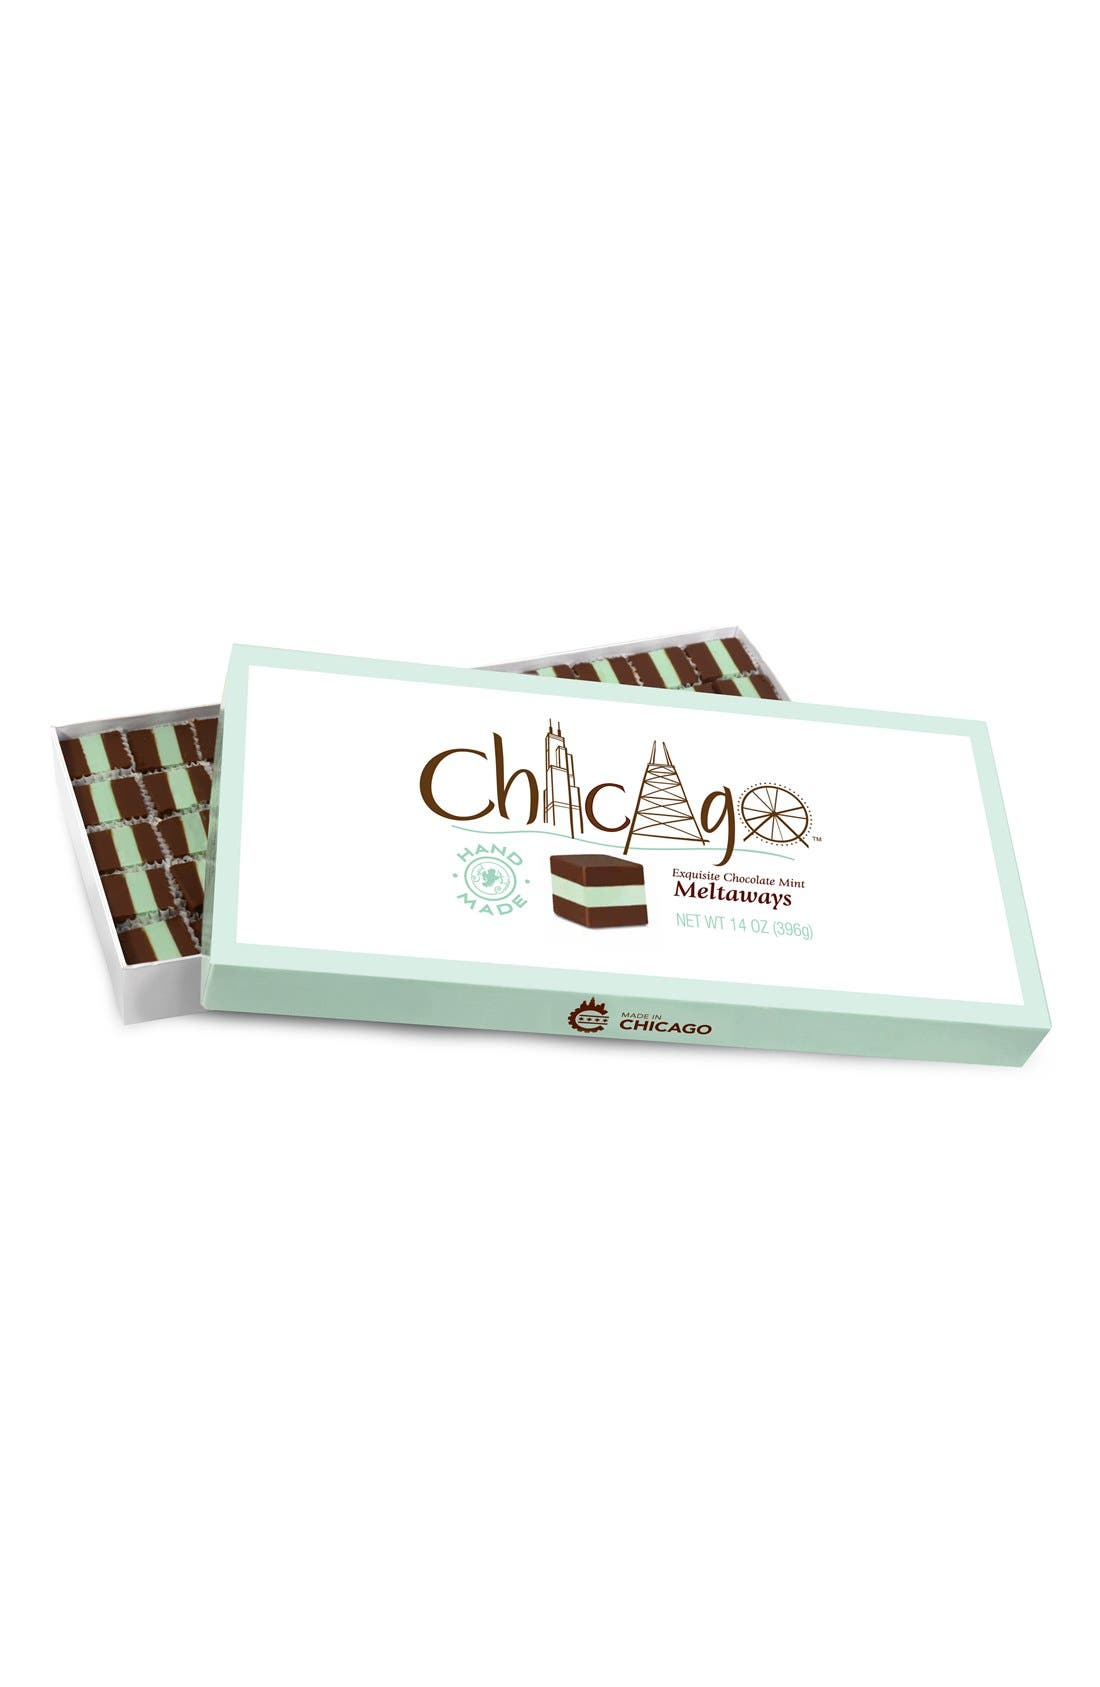 Chicago Classic Confections Chocolate Mint Meltaways